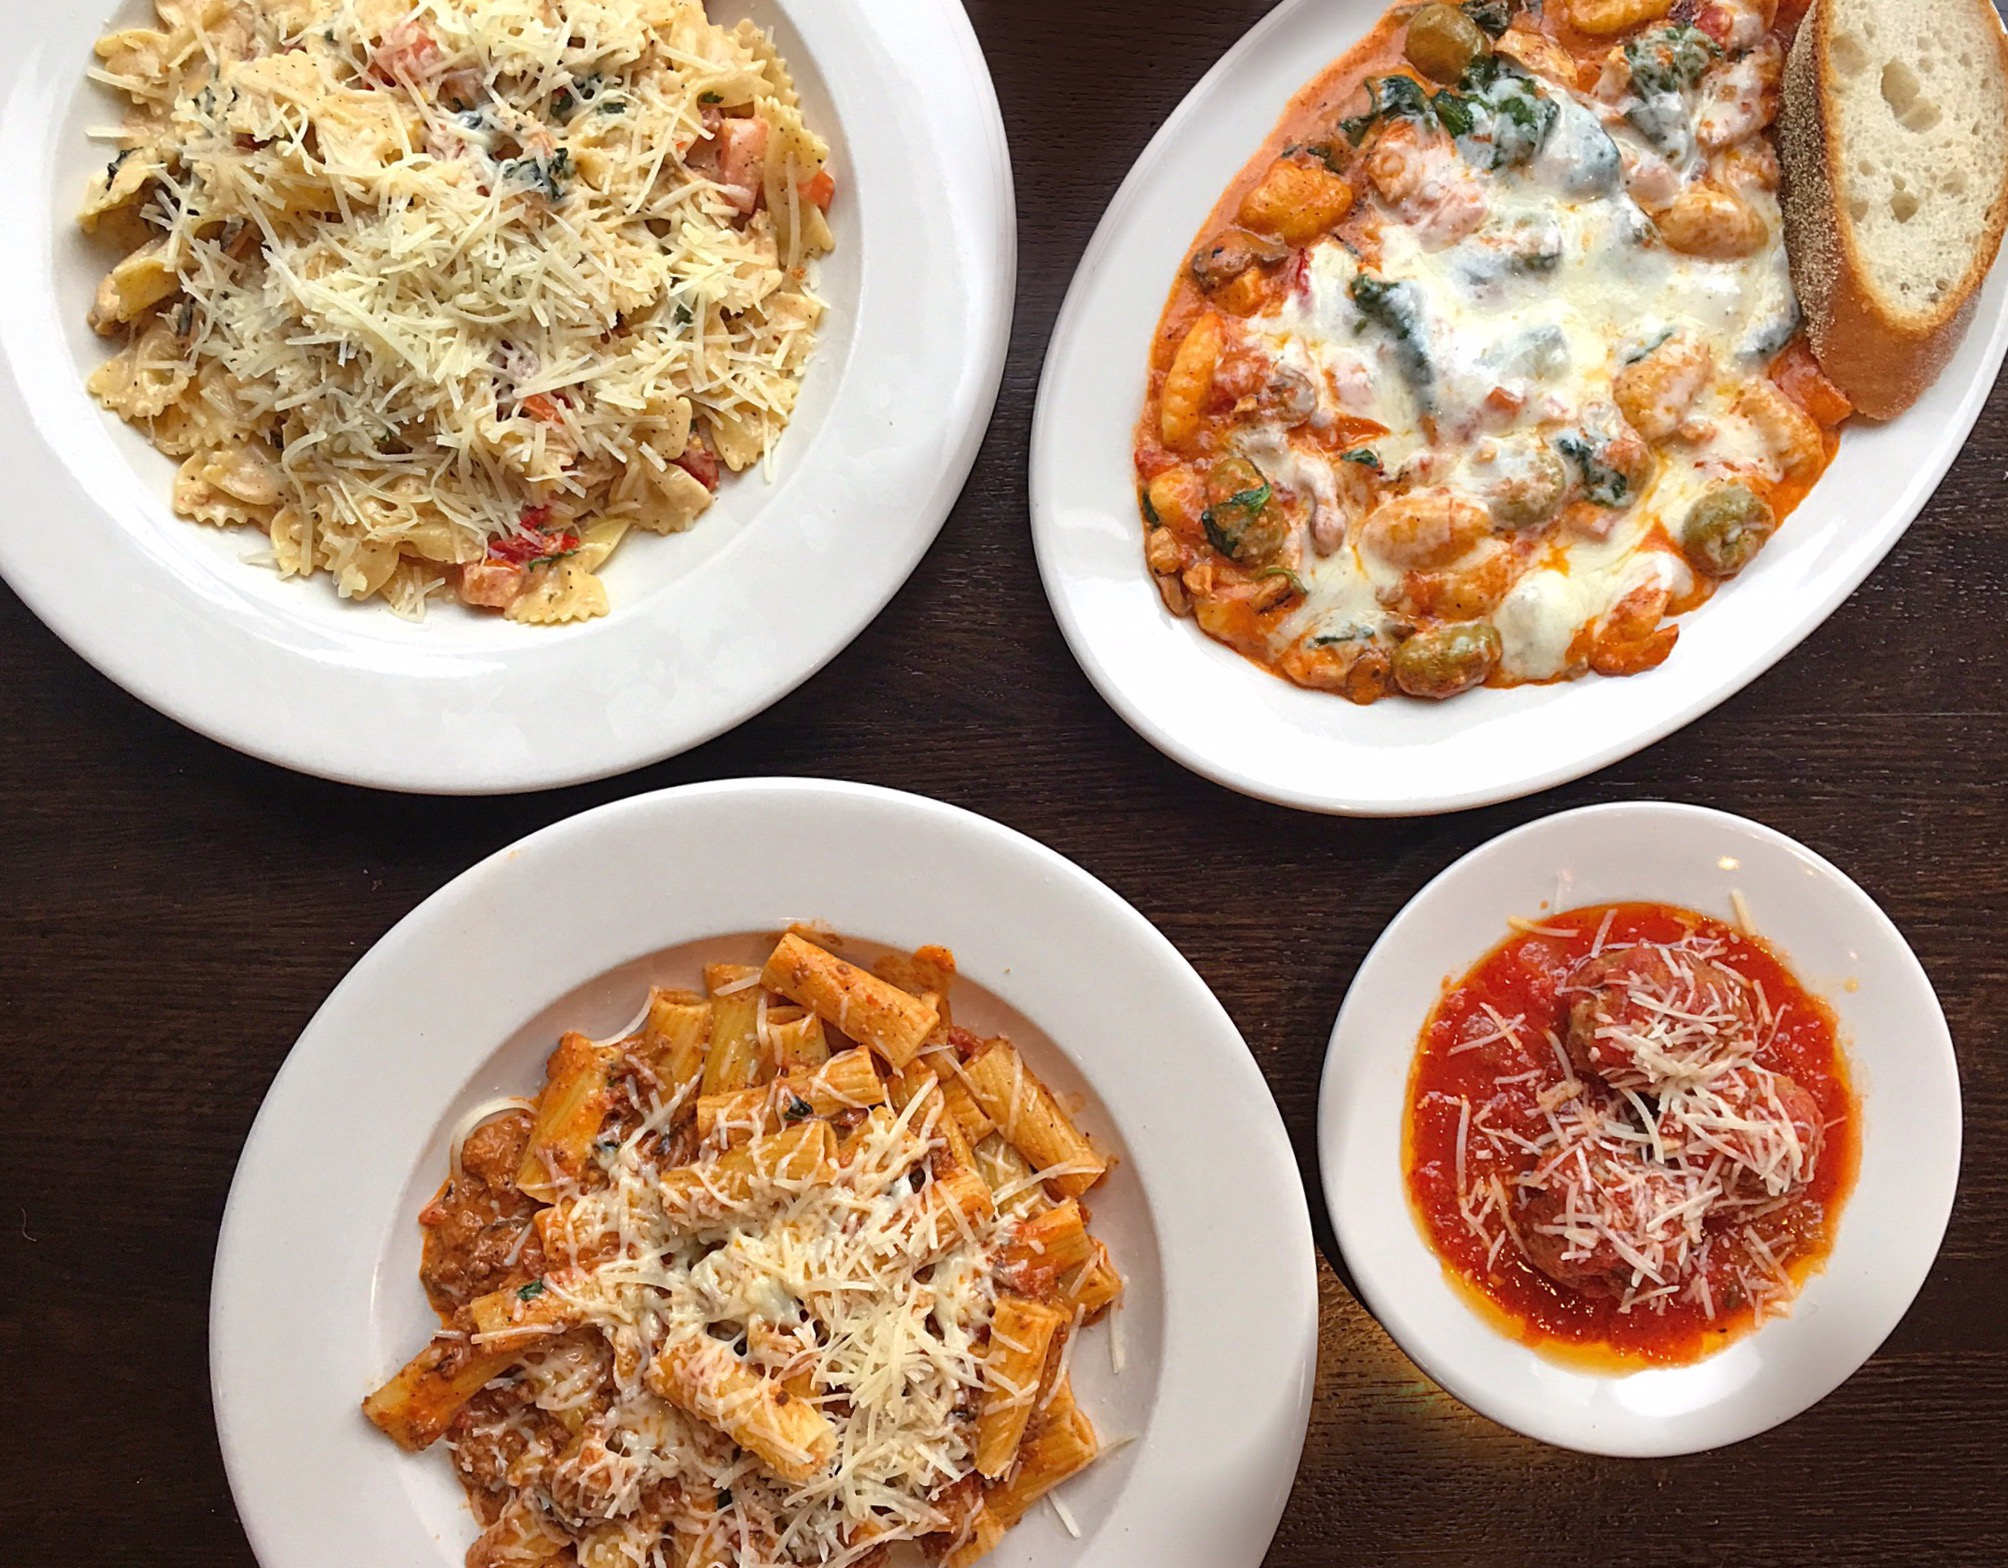 Fab Review The Pasta Bowl & Fab Review: The Pasta Bowl - Fab Food Chicago